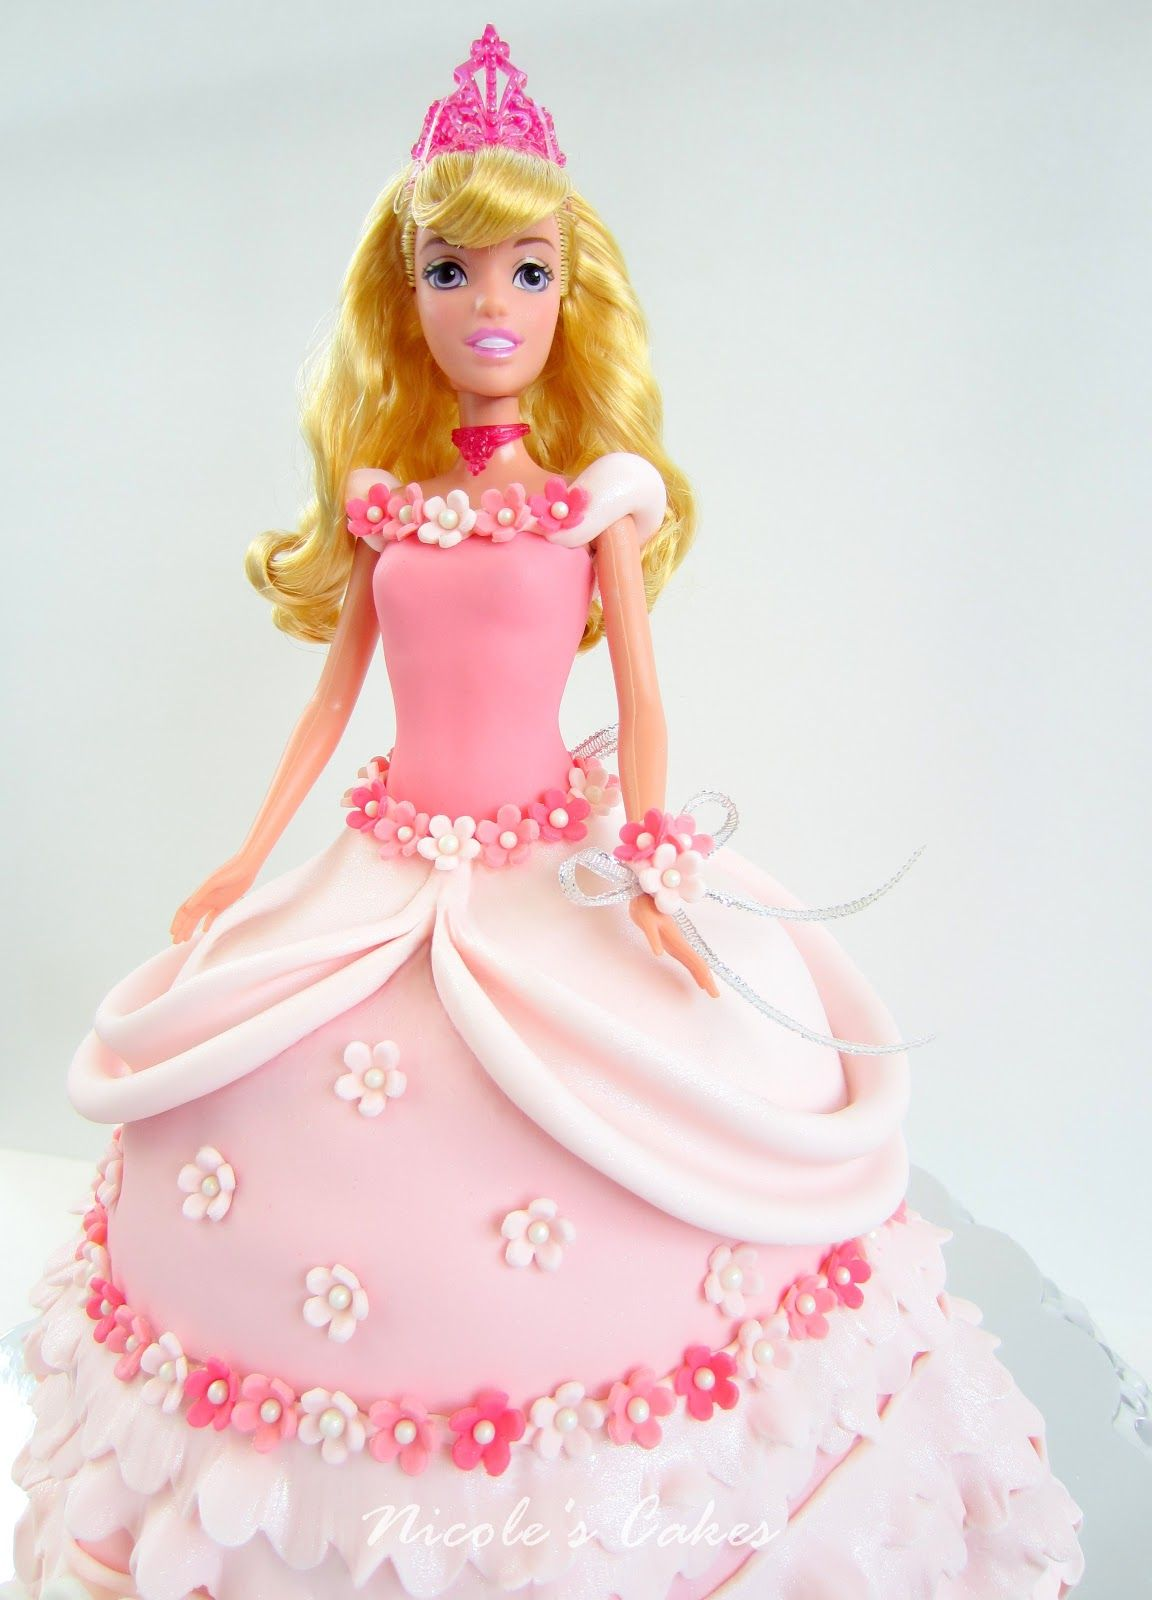 Blonde 3D Princess Doll Pick Birthday Cake Decorating Ideal For Barbie Cakes